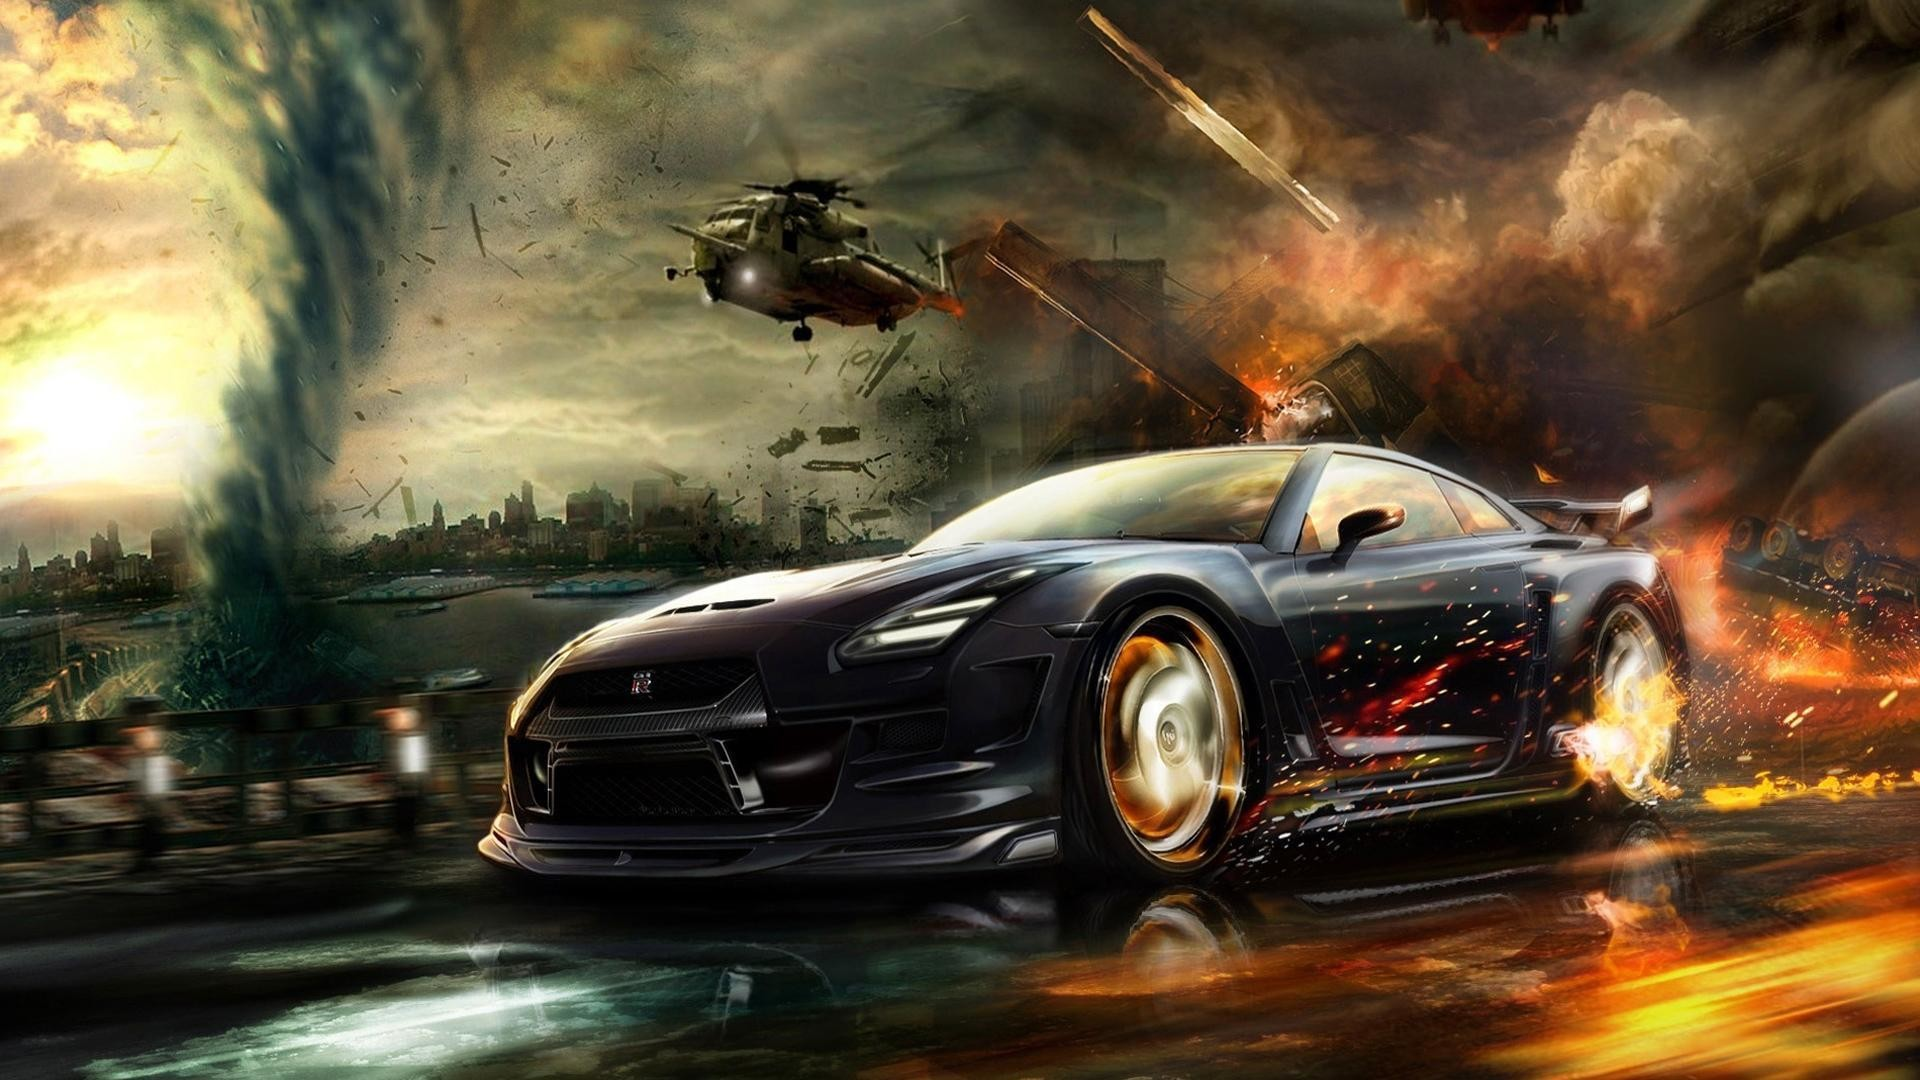 Res: 1920x1080, Street Racing Wallpapers - Viewing Gallery